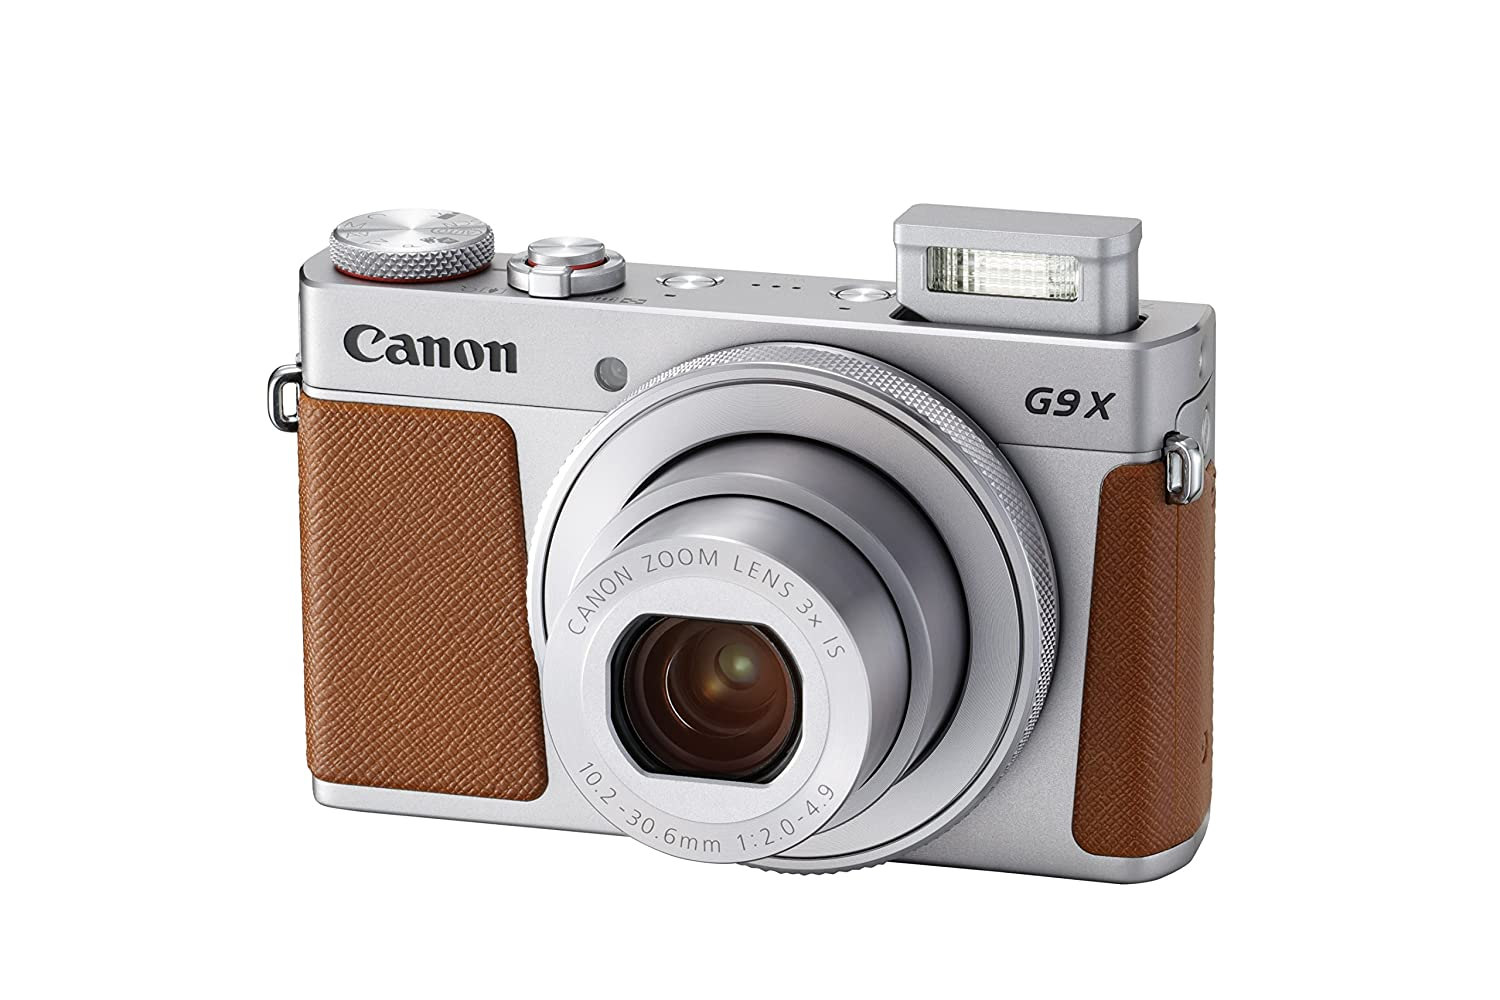 Canon PowerShot G9 X Mark II Compact Digital Camera w/1 Inch Sensor and 3inch LCD - Wi-Fi, NFC, Bluetooth Enabled (Silver)